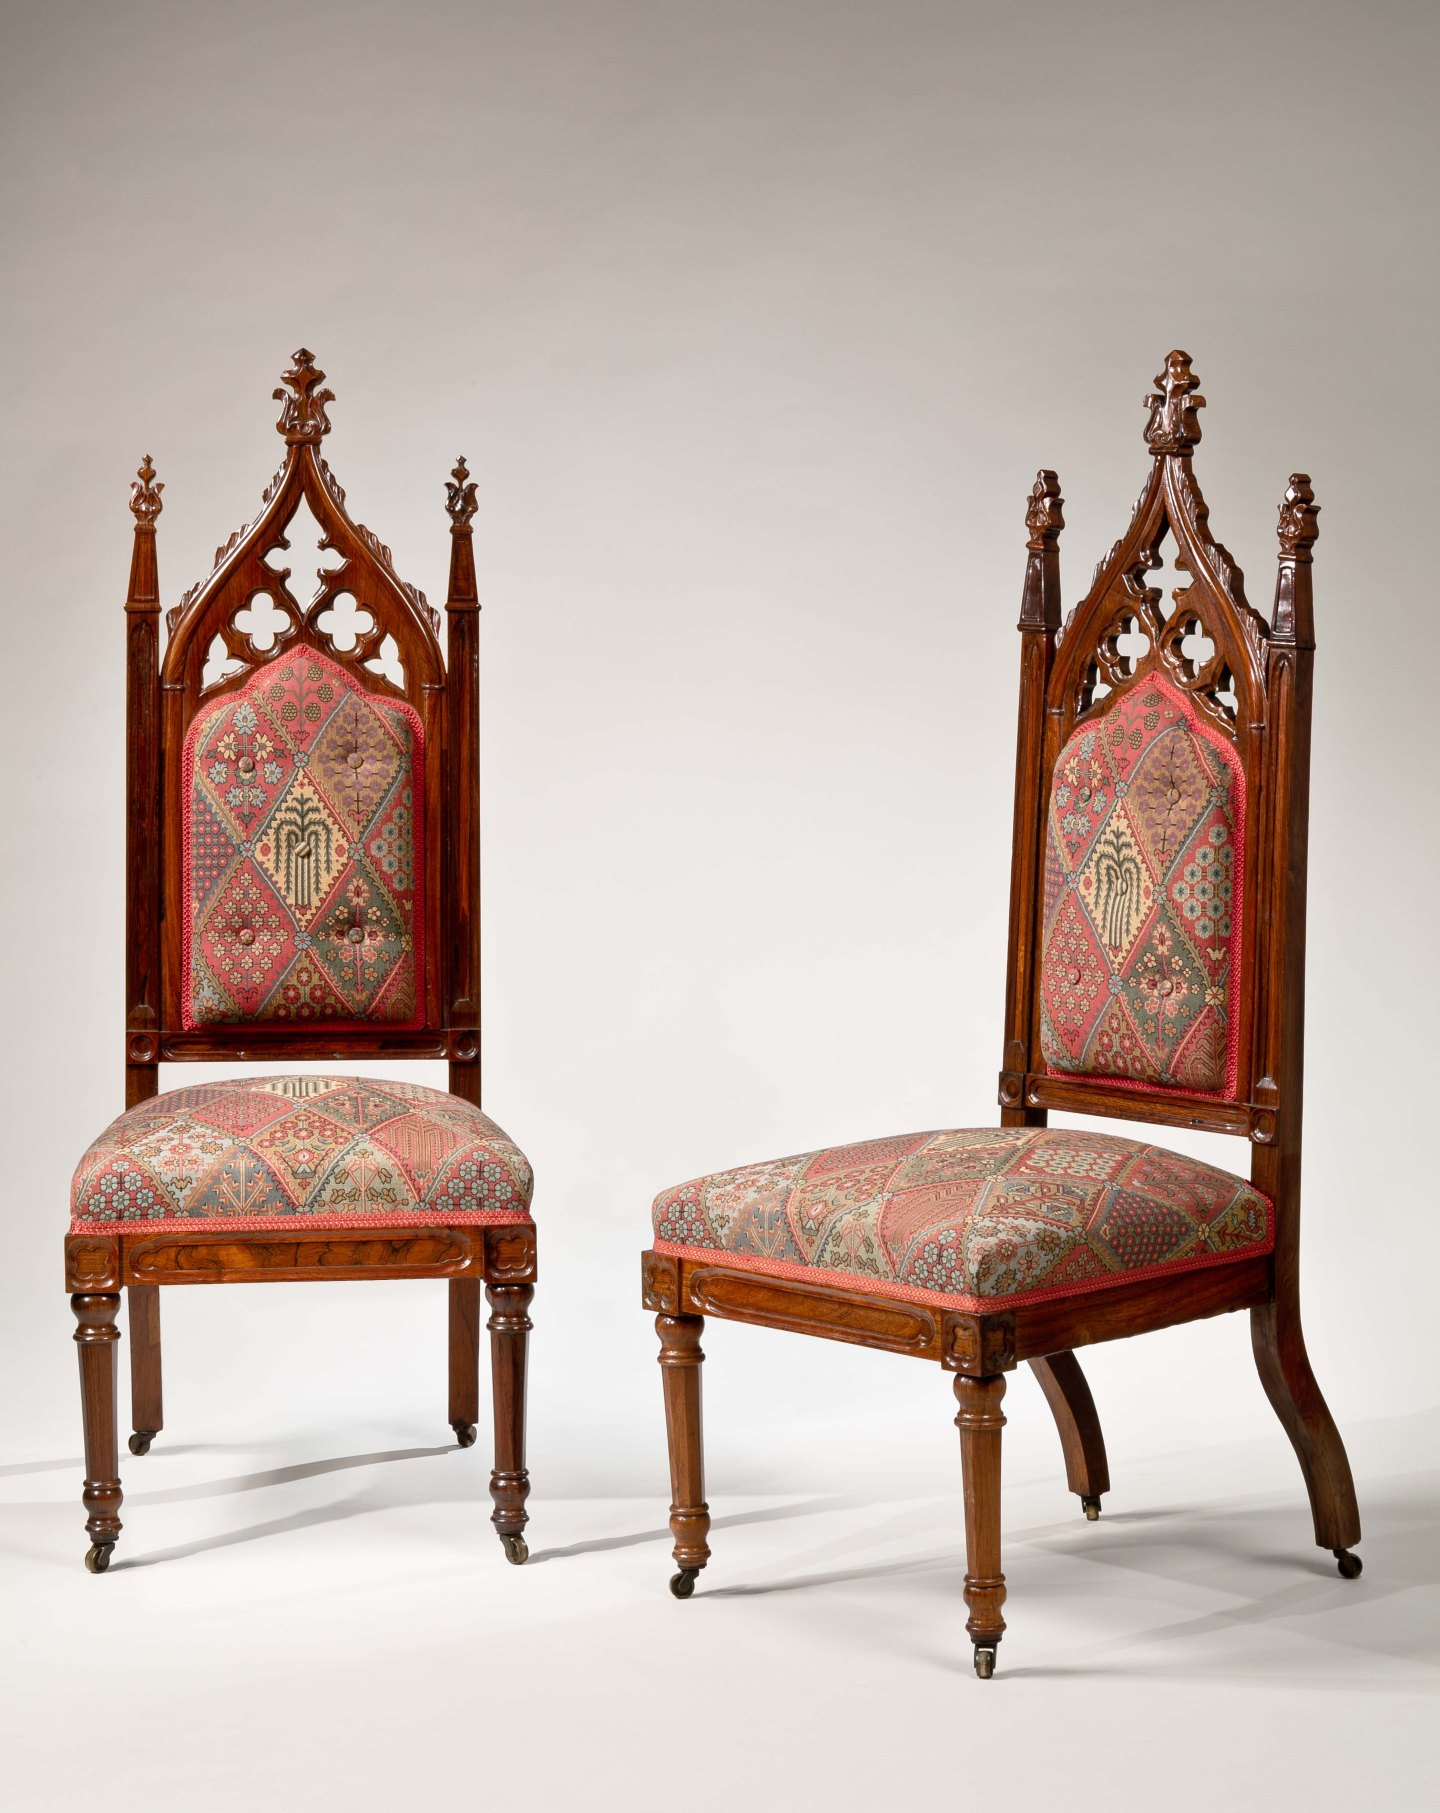 Pair of Rosewood Gothic Revival Slipper Chairs